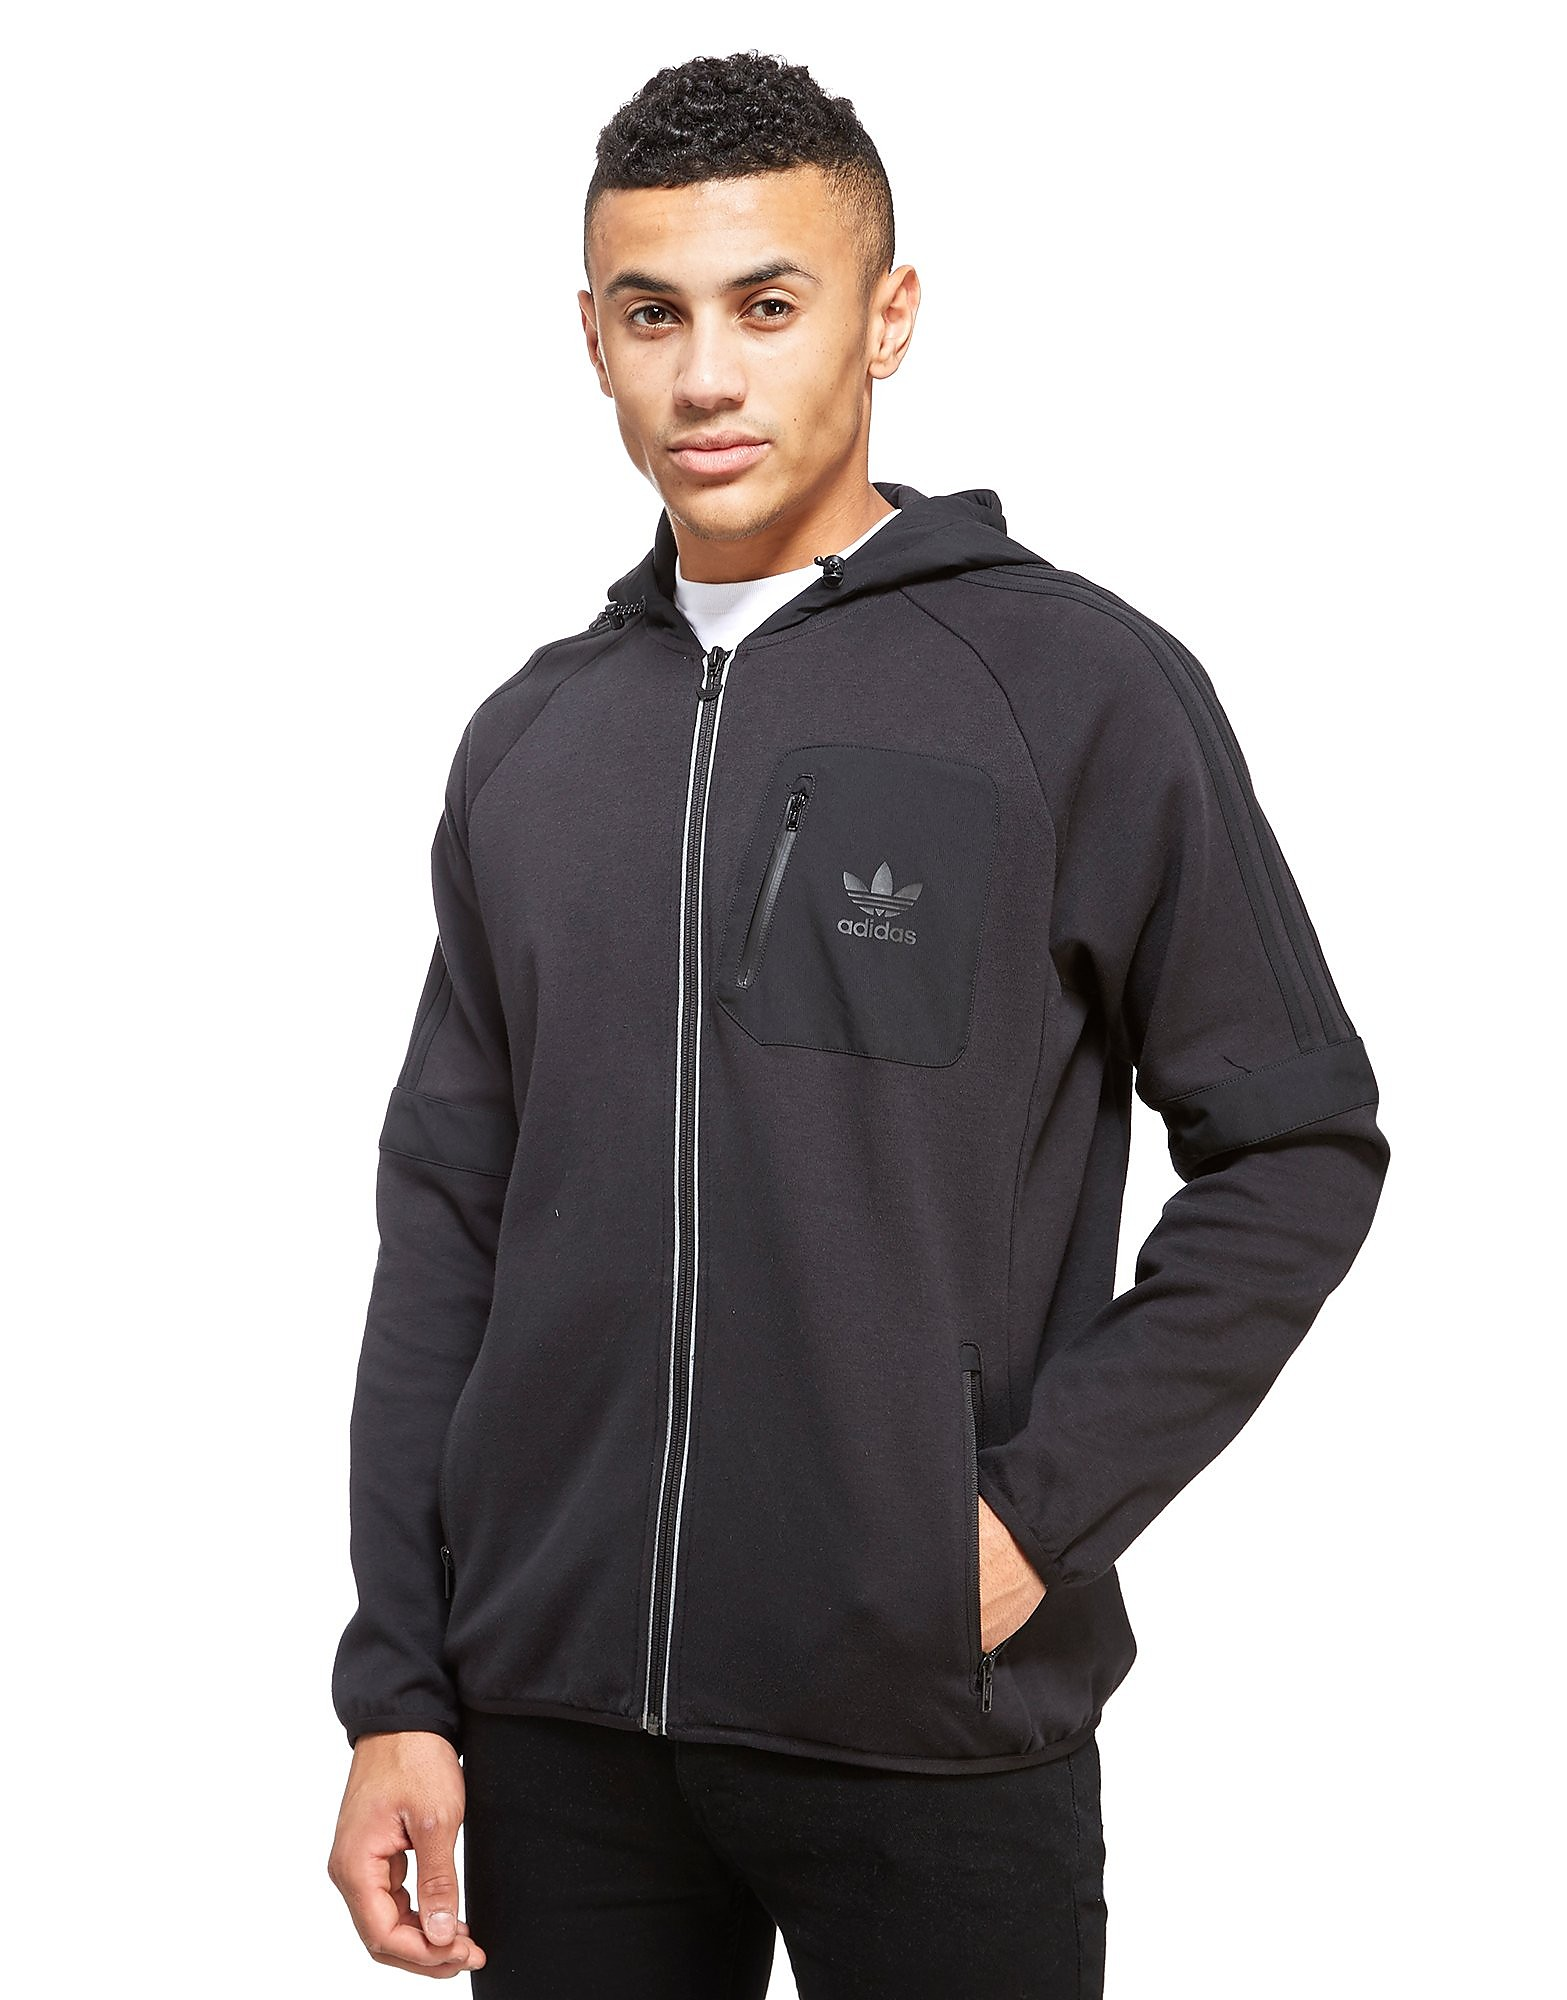 adidas Originals Nomad Full Zip Tech Hoody